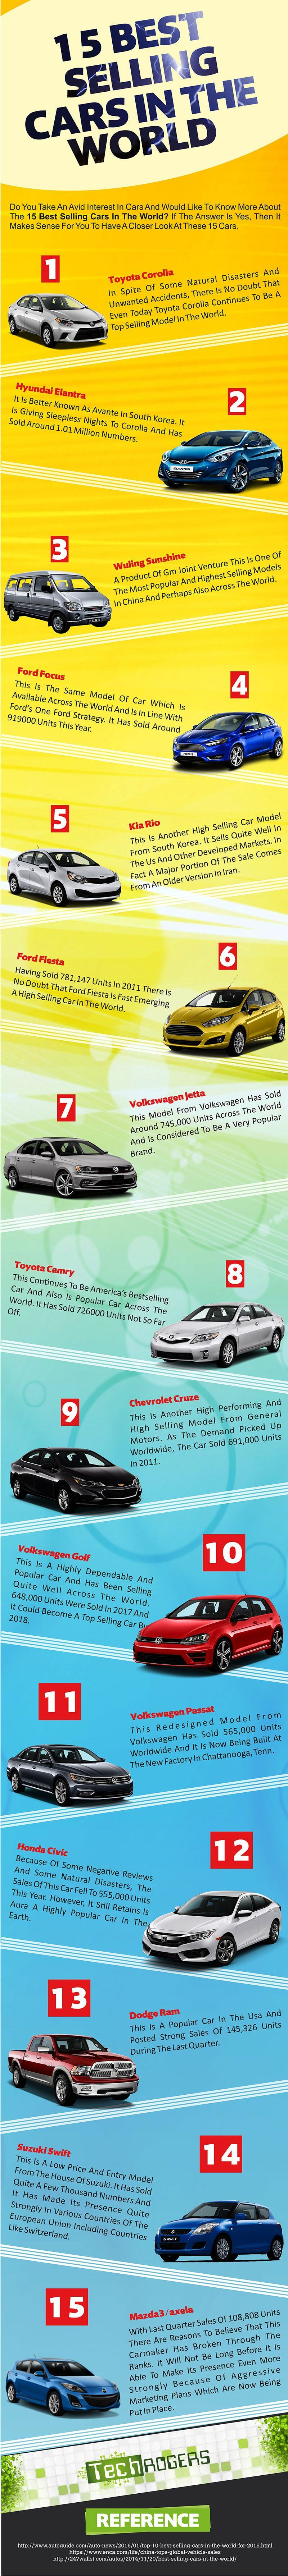 15-Best-Selling-Cars-in-the-World